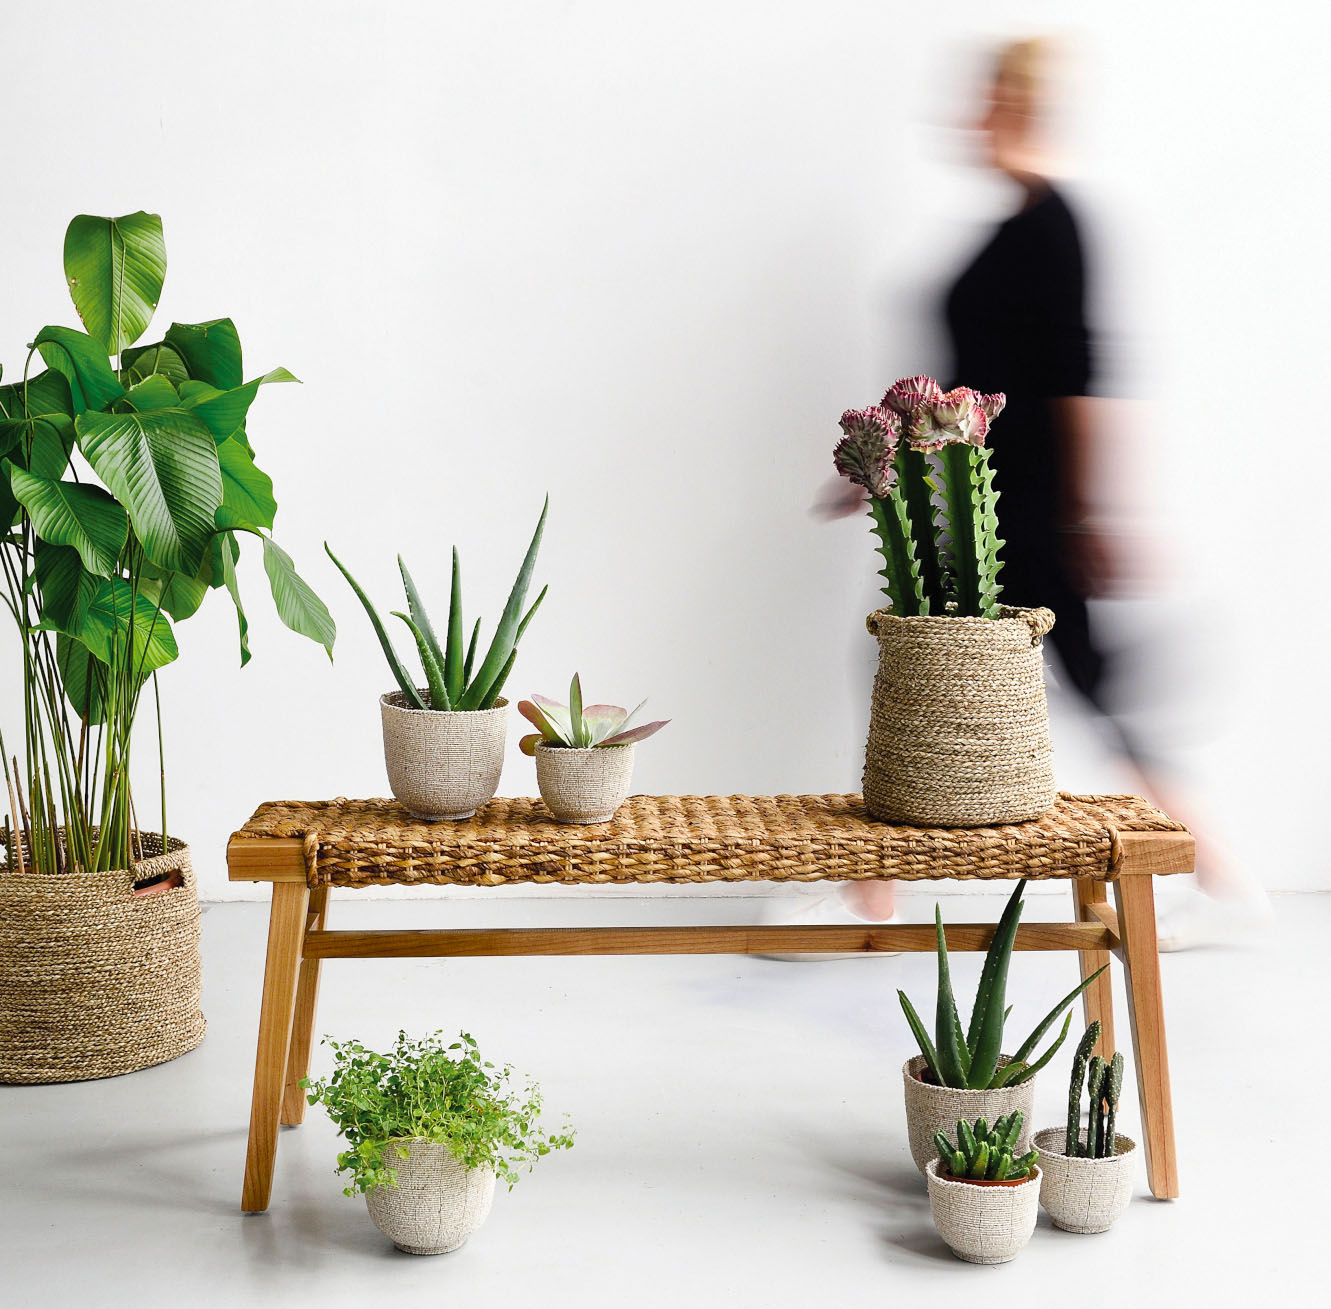 Abaca Bench from Island Living